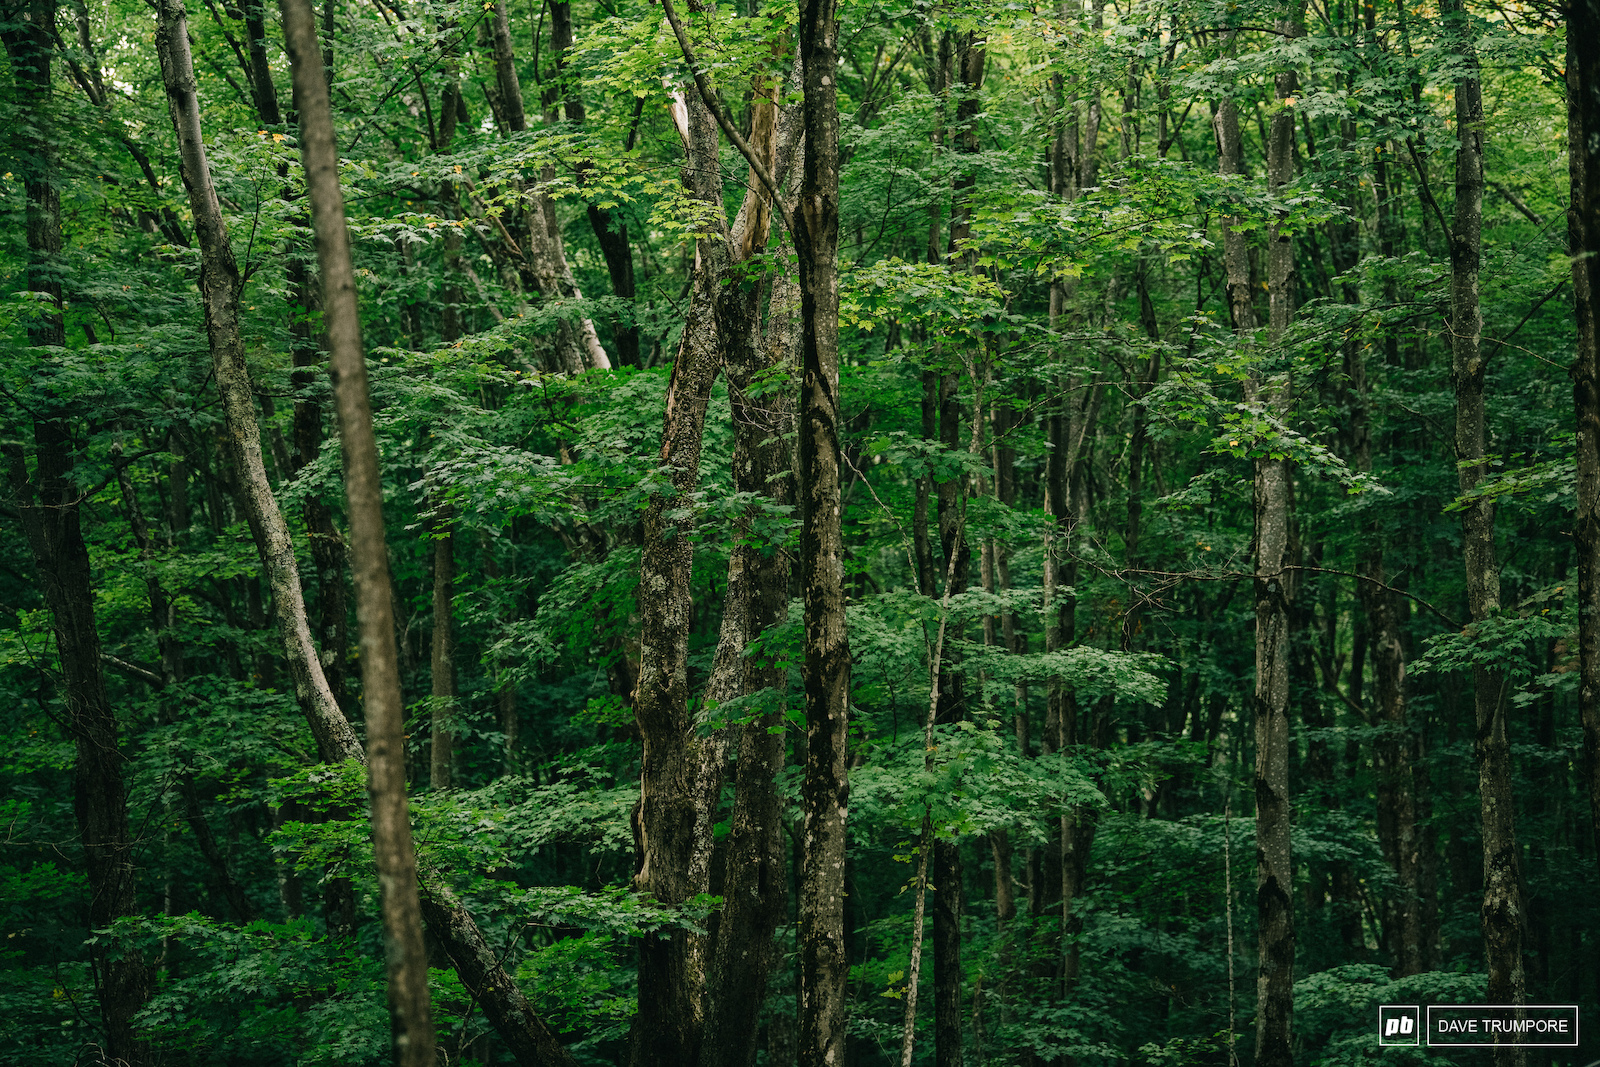 The thick forest here in West Virgina may look peaceful but today it was anything but as racfers battled it out for World Cup titles